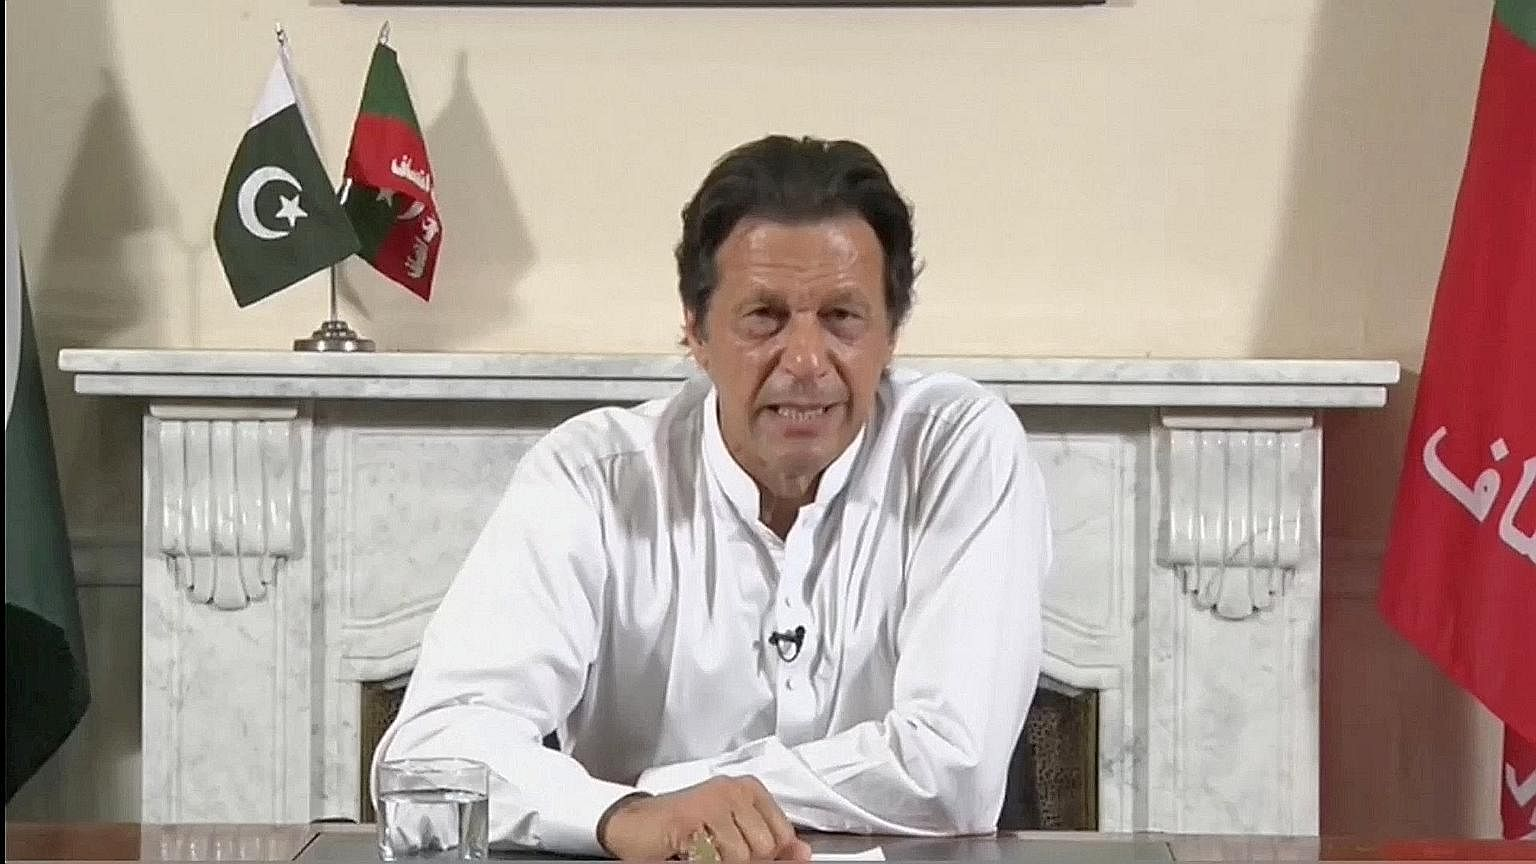 Cricket star turned politician Imran Khan yesterday claimed victory as his opposition party, Pakistan Tehreek-e-Insaf (PTI) or Movement for Justice, looked set to win Pakistan's general election. Unofficial results showed it had gained a strong lead